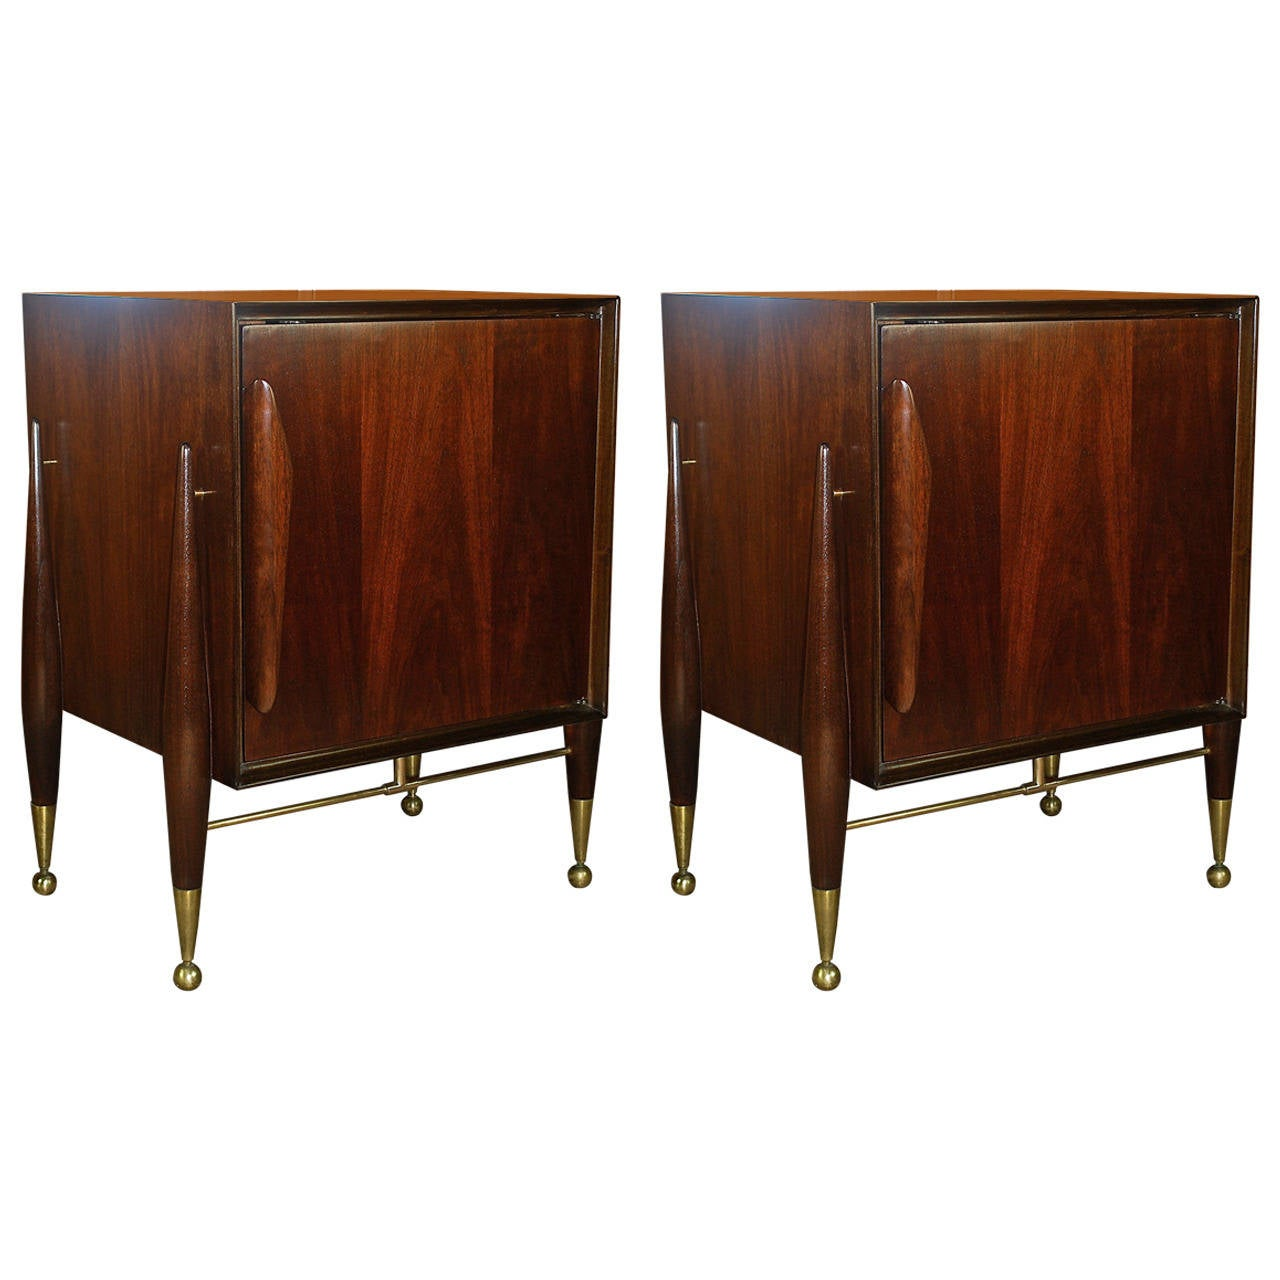 Mid century modern pair of sculptural nightstands with brass details